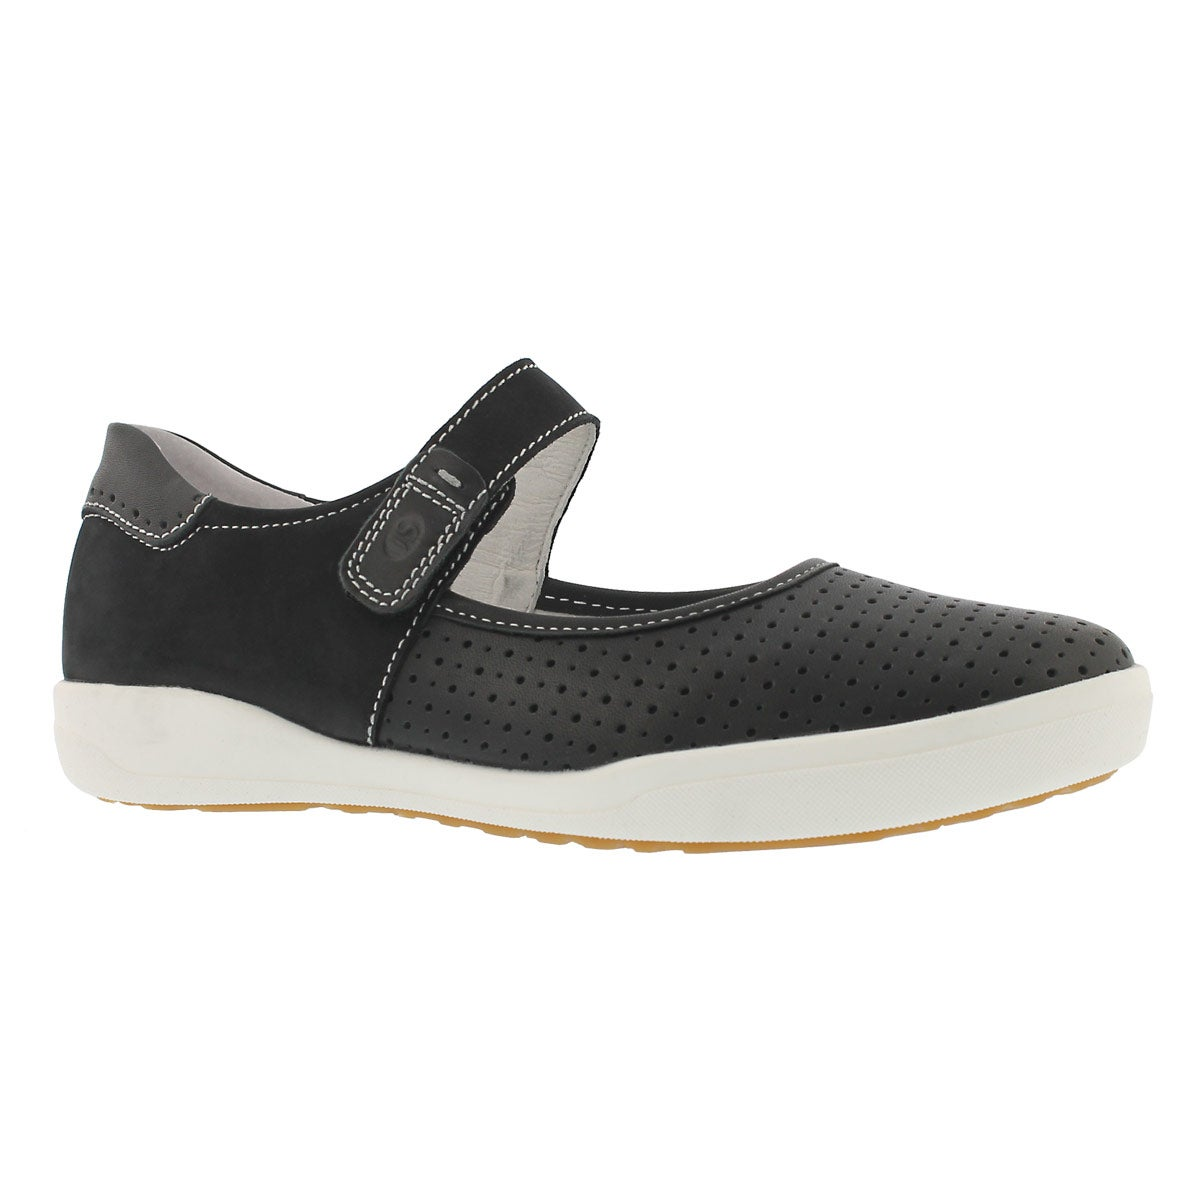 Women's SINA 07 black mary janes